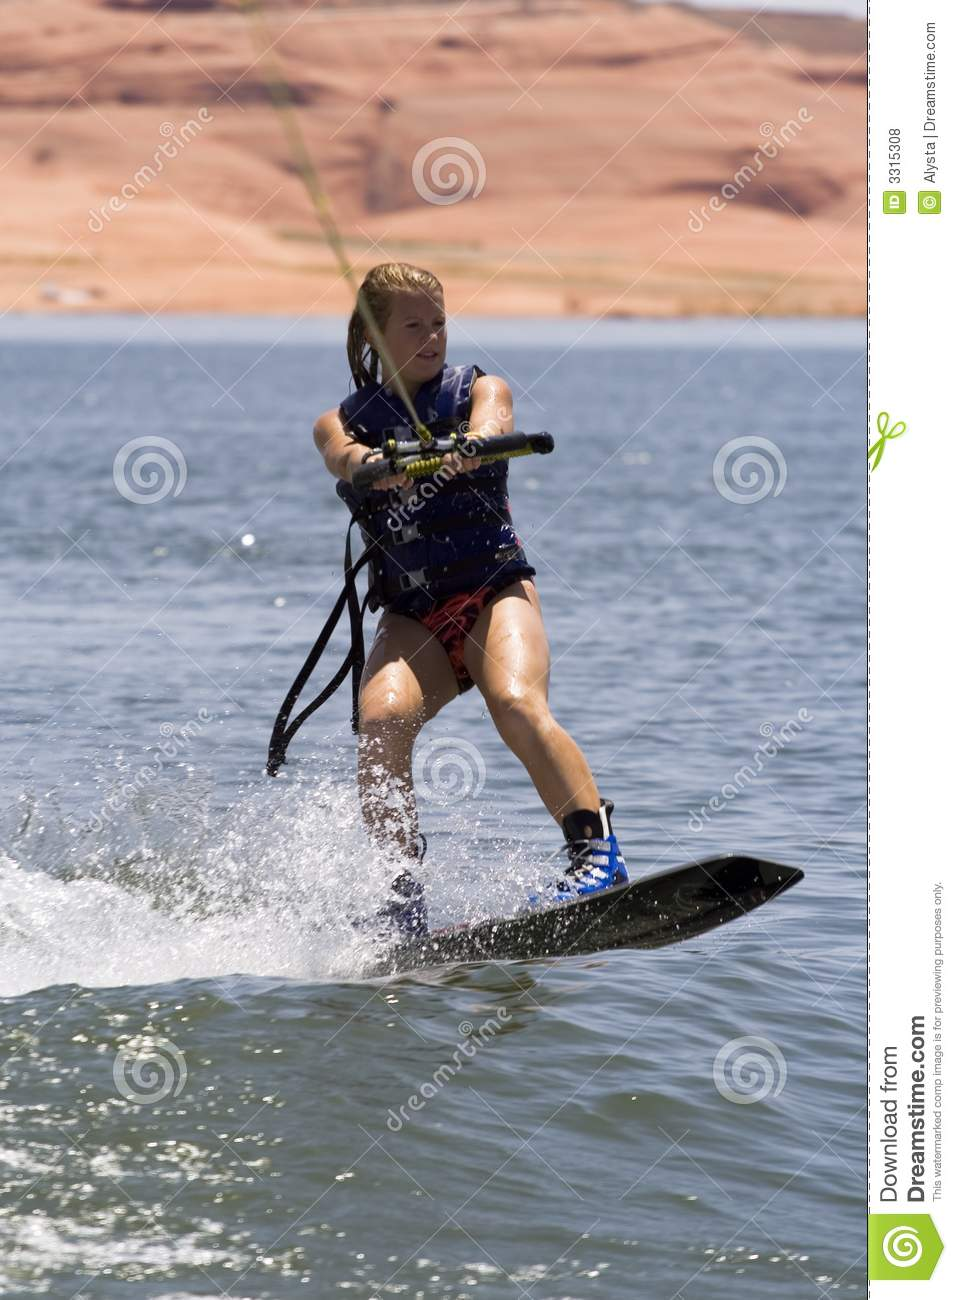 Wakeboard Girl Wallpaper Girl Wakeboarding Royalty Free Stock Photos Image 3315308